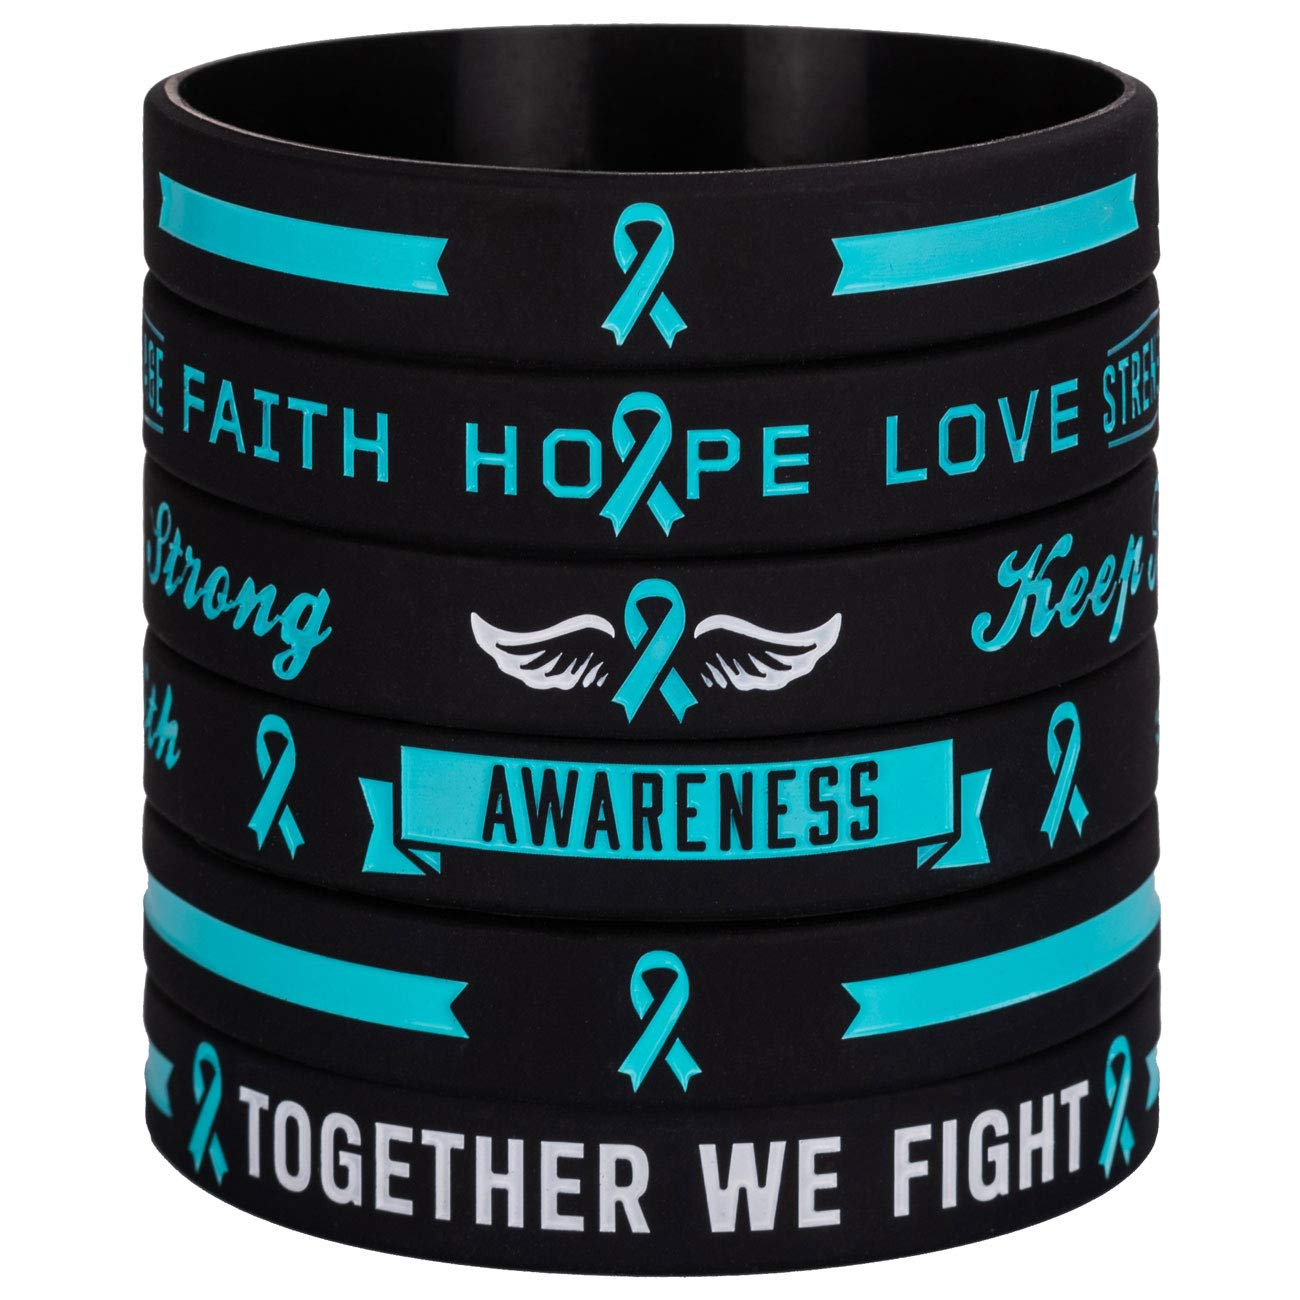 Teal Cancer /& Cause Ribbon Wristbands Gifts for Men Women Sainstone Teal Awareness Ribbon Silicone Bracelets with Saying Family Friends Patients Survivors Mental Health Awareness Bracelet